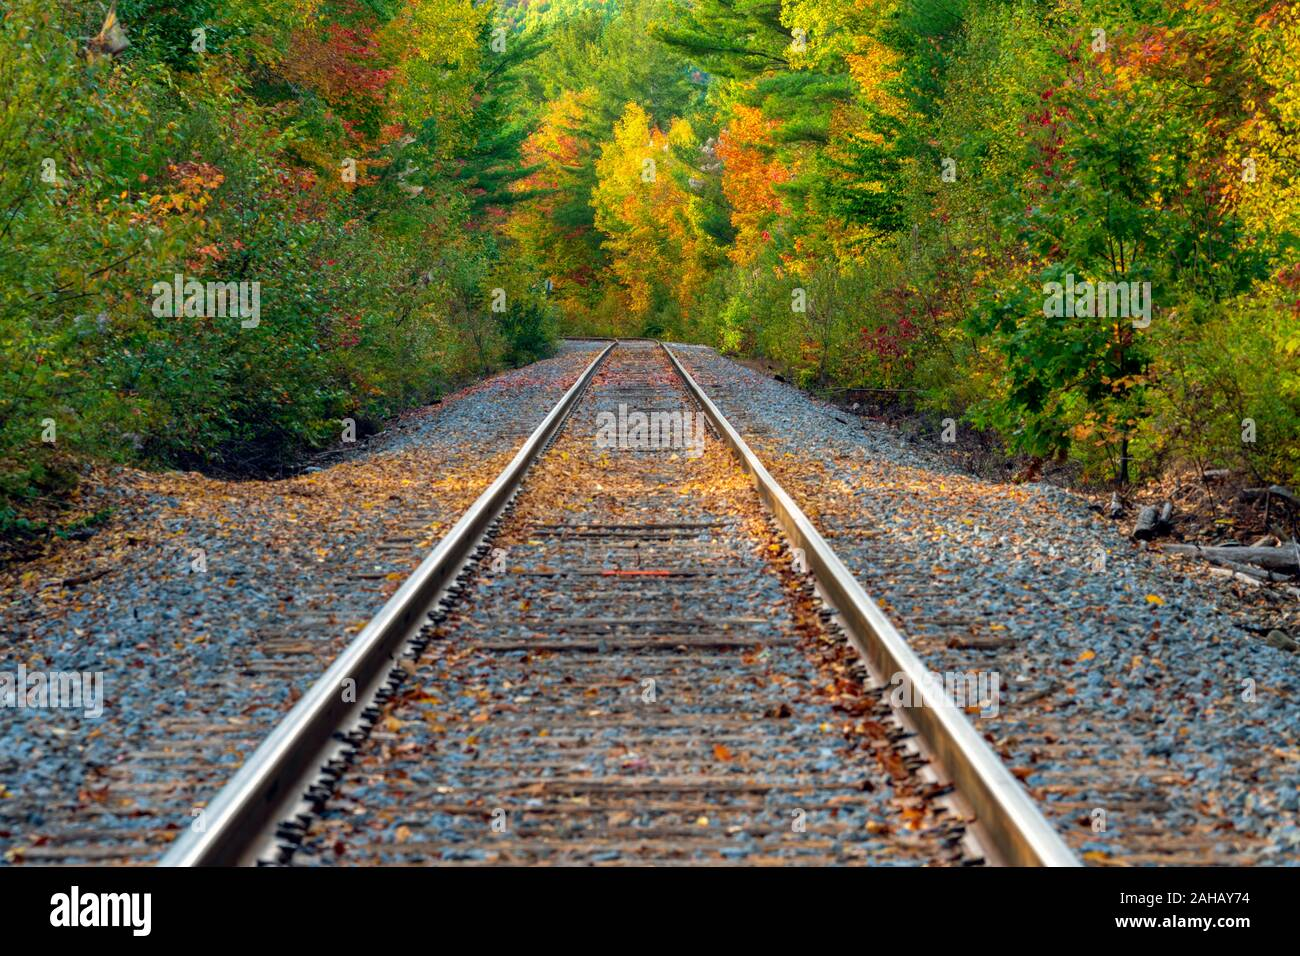 Railway tracks lead into the forest displaying colorful autumn leaves. Stock Photo